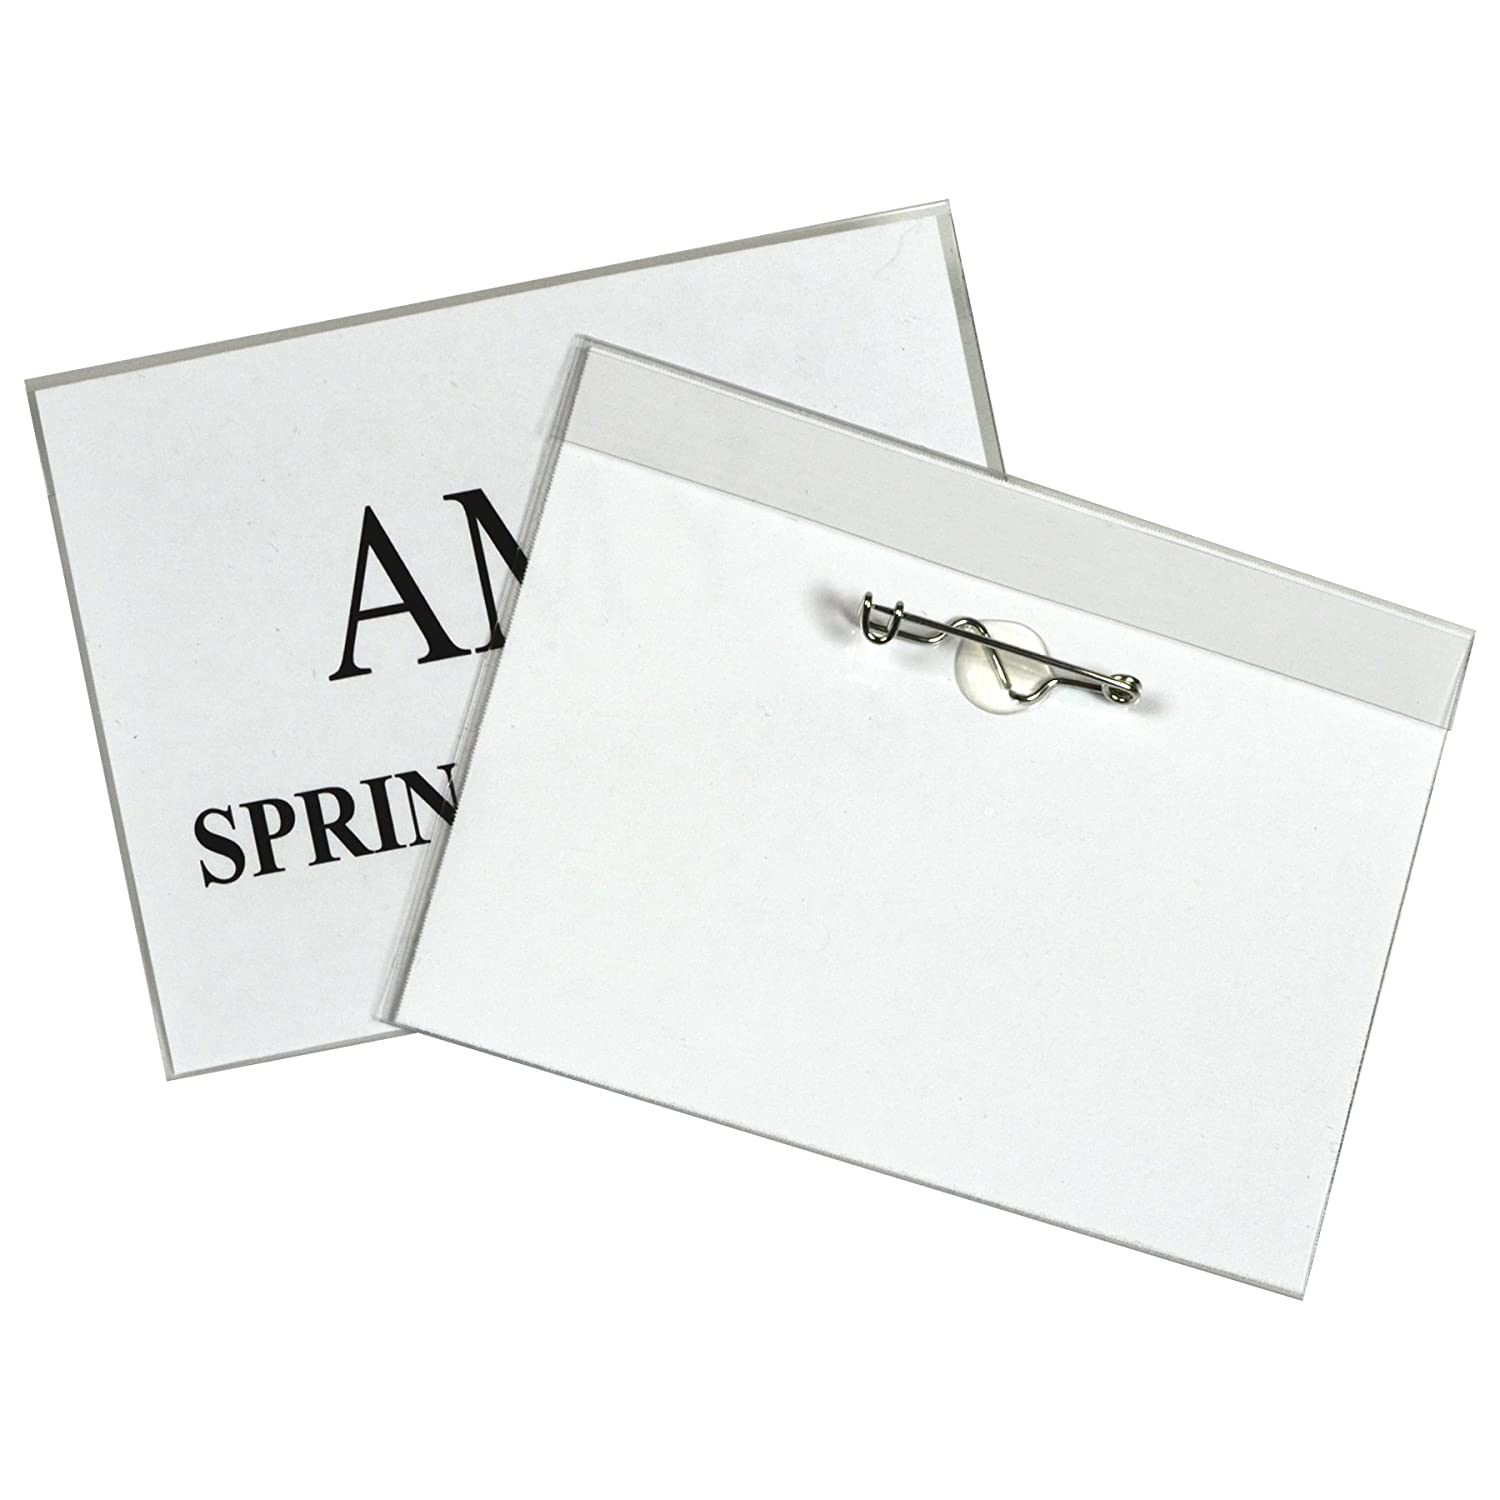 C-Line Pin Style Name Badge Holders, 3.5 x 2.25 Inches, Clear, 100 per Box (94223) C-Line Products Inc.